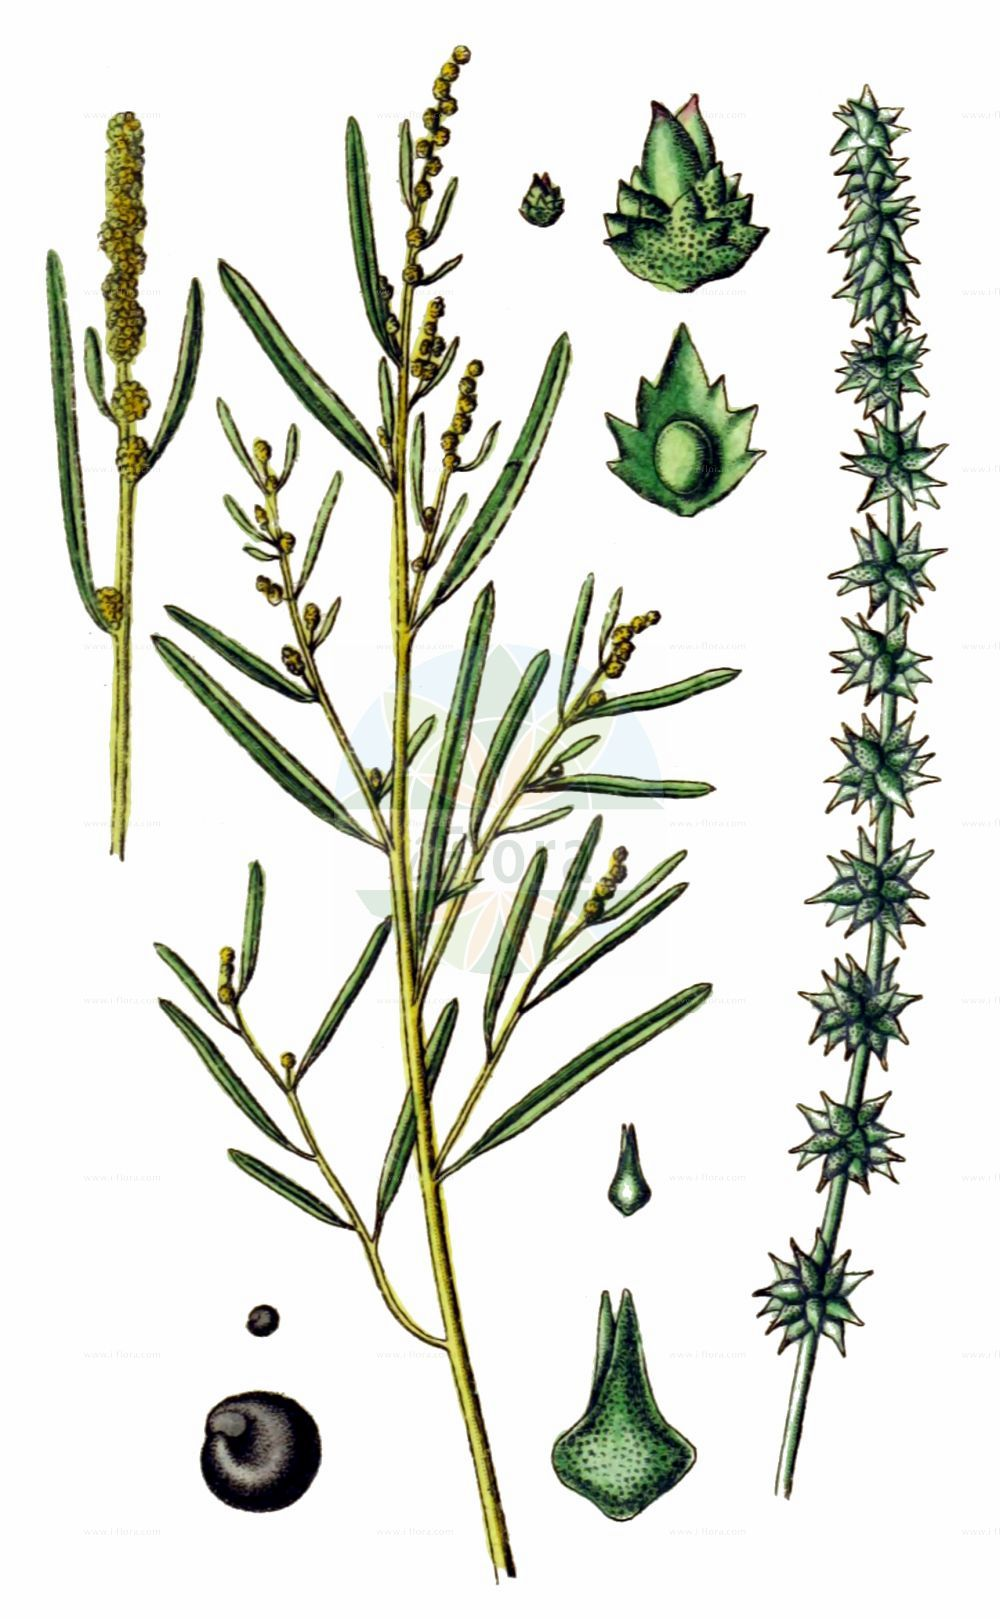 Historische Abbildung von Atriplex littoralis (Strand-Melde - Grass-leaved Orache). Das Bild zeigt Blatt, Bluete, Frucht und Same. ---- Historical Drawing of Atriplex littoralis (Strand-Melde - Grass-leaved Orache).The image is showing leaf, flower, fruit and seed.(Atriplex littoralis,Strand-Melde,Grass-leaved Orache,Atriplex littoralis,Atriplex serrata,Strand-Melde,Grass-leaved Orache,Crested Saltbush,Grassleaf Orache,Shore Orache,Atriplex,Melde,Saltbush,Amaranthaceae,Fuchsschwanzgewaechse,Pigweed family,Blatt,Bluete,Frucht,Same,leaf,flower,fruit,seed,Sturm (1796f))